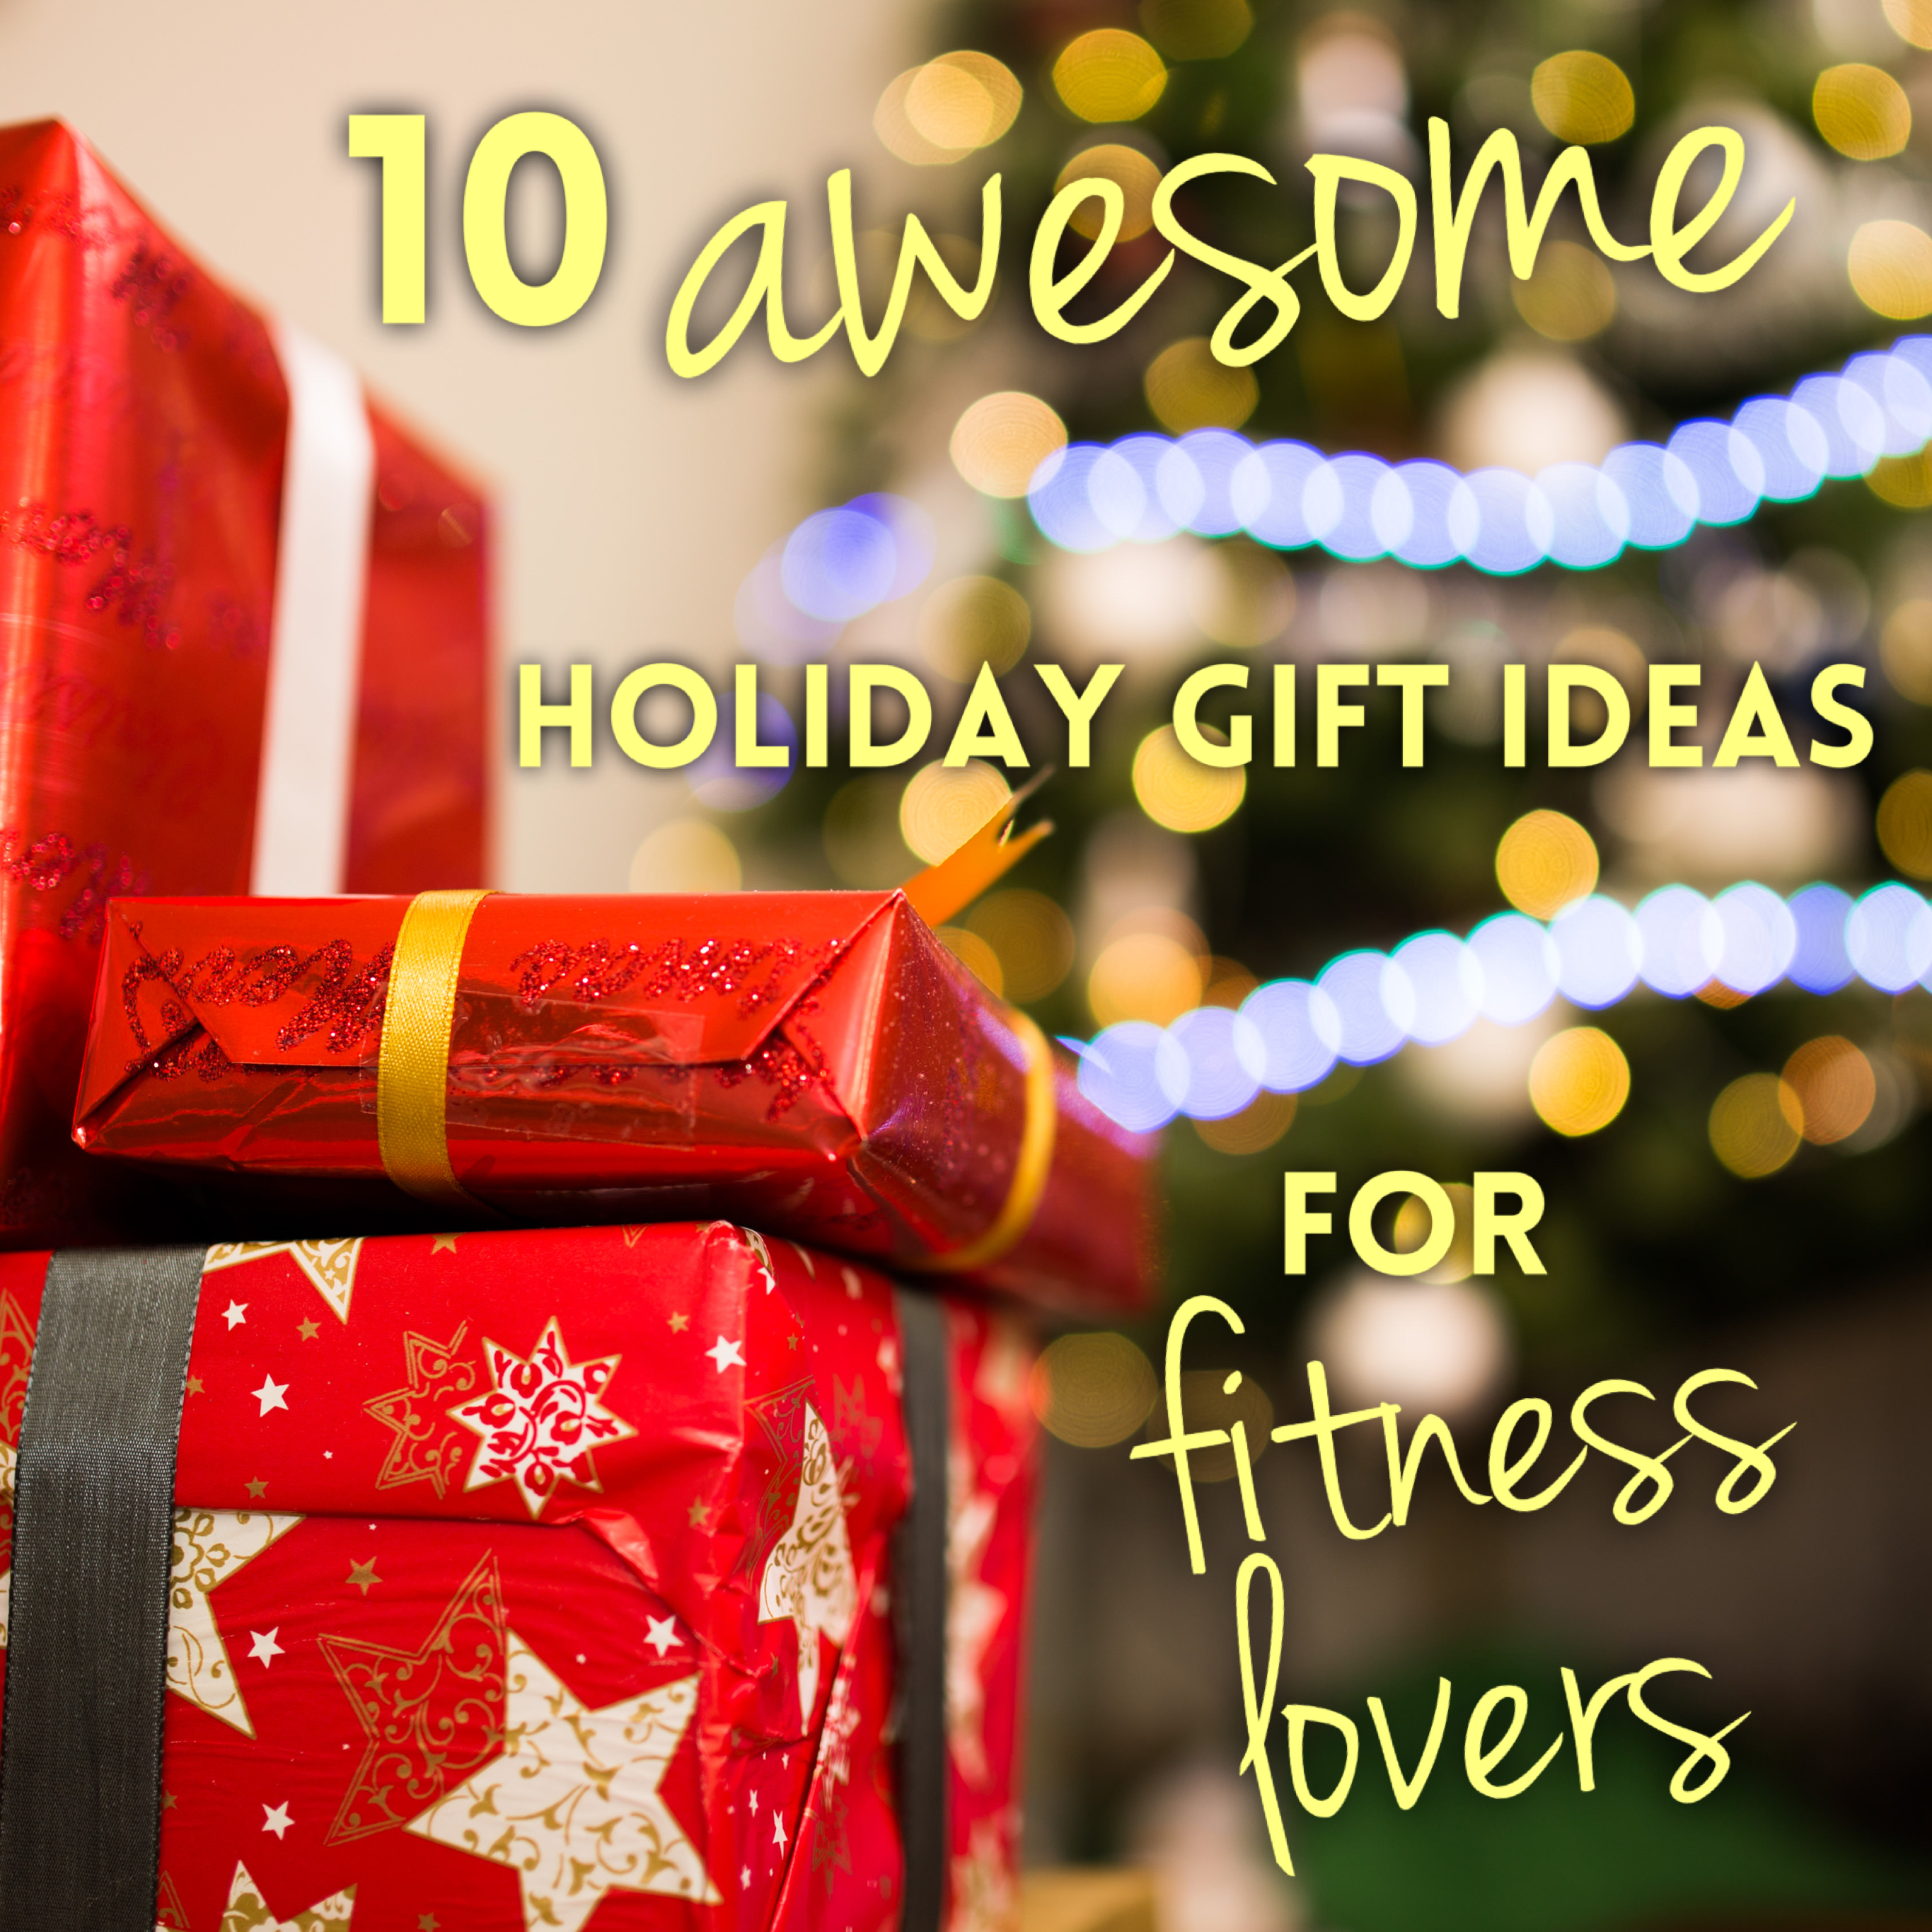 10 awesome gift ideas for fitness lovers in your life